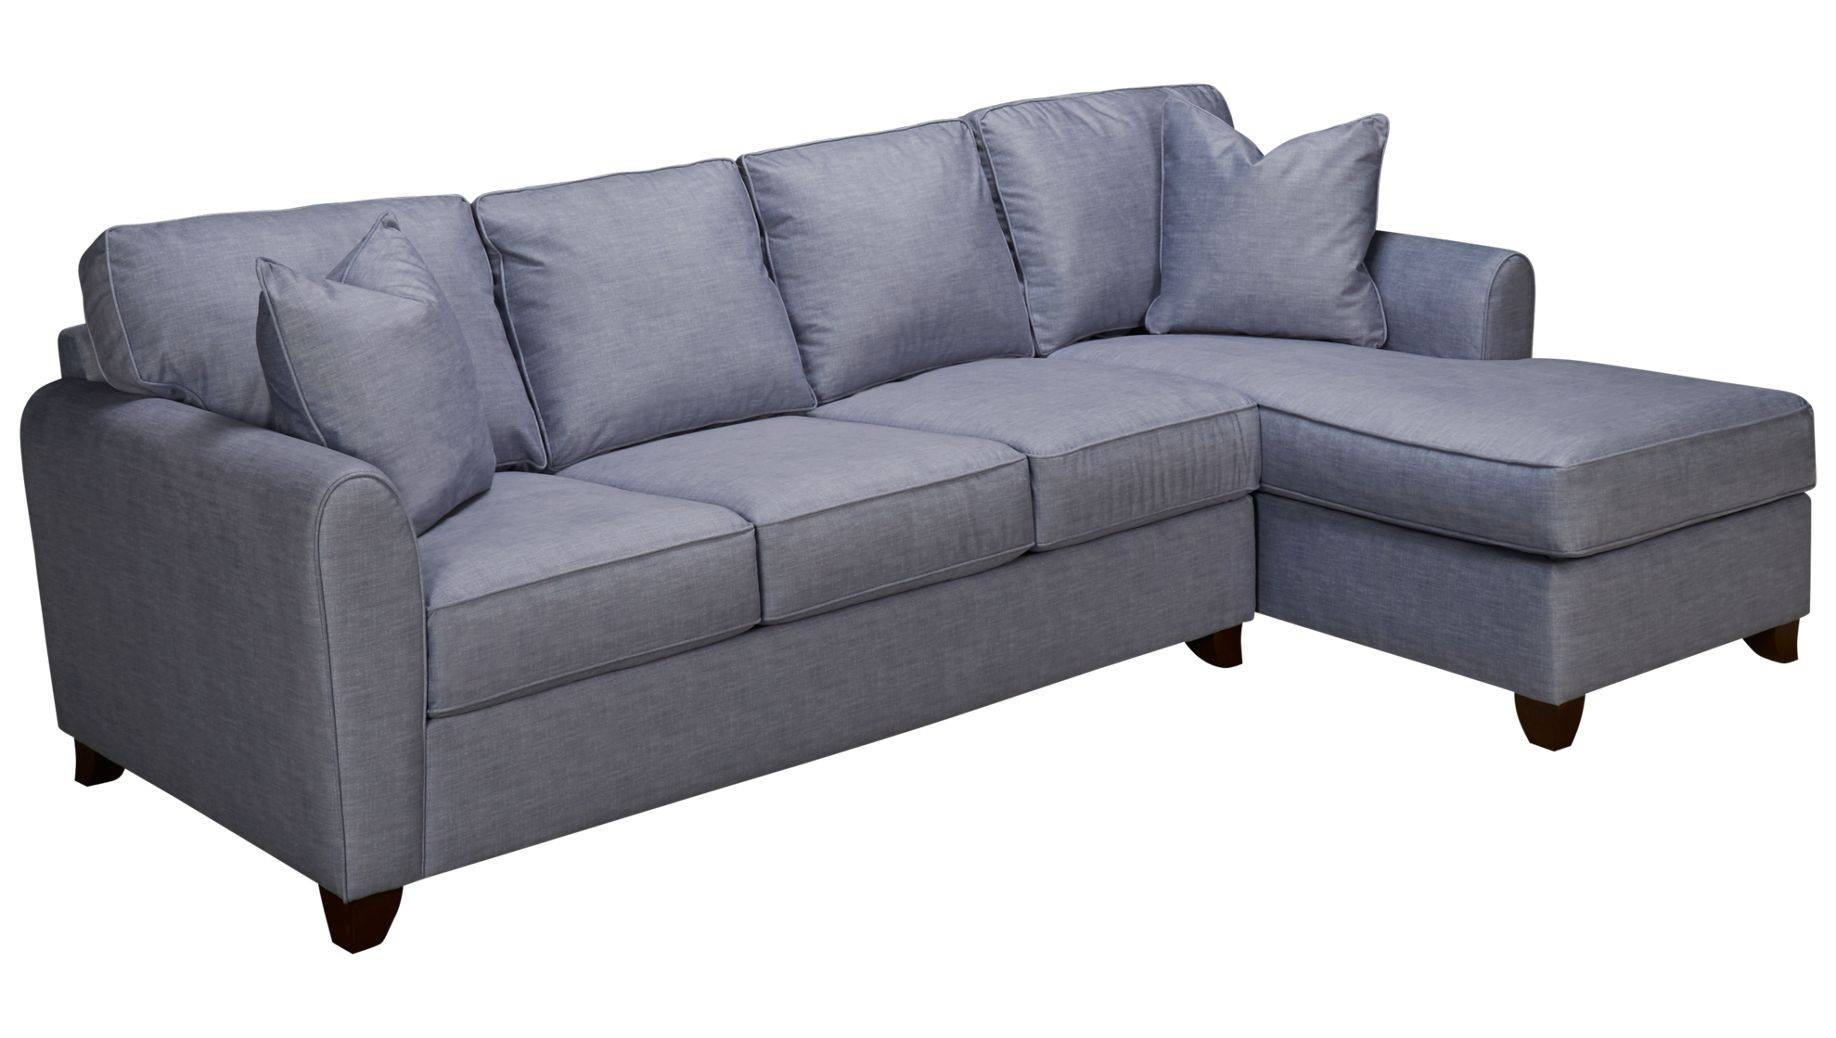 The Most Popular Bauhaus Sectional Sofa 76 For Your American Made for American Made Sectional Sofas (Image 26 of 30)